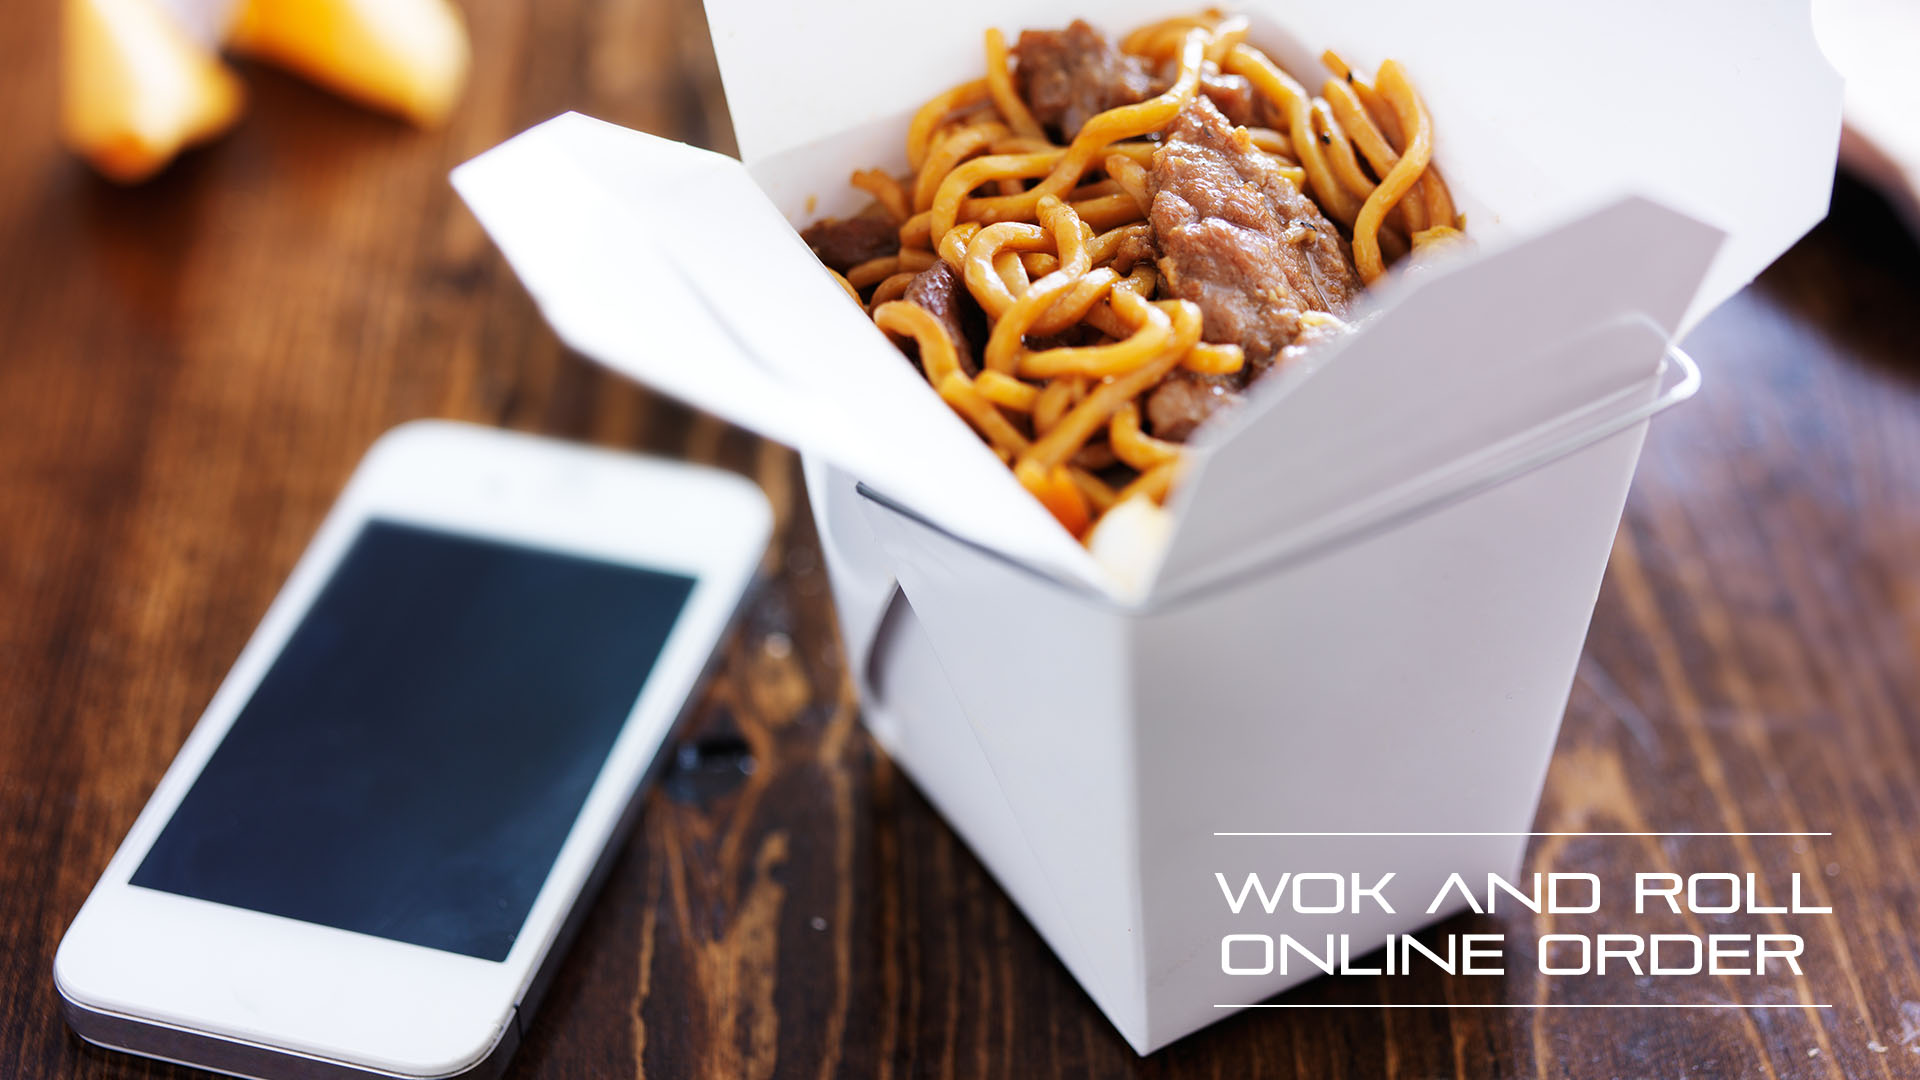 Online Order, Our delivery service is FREE when you order online.